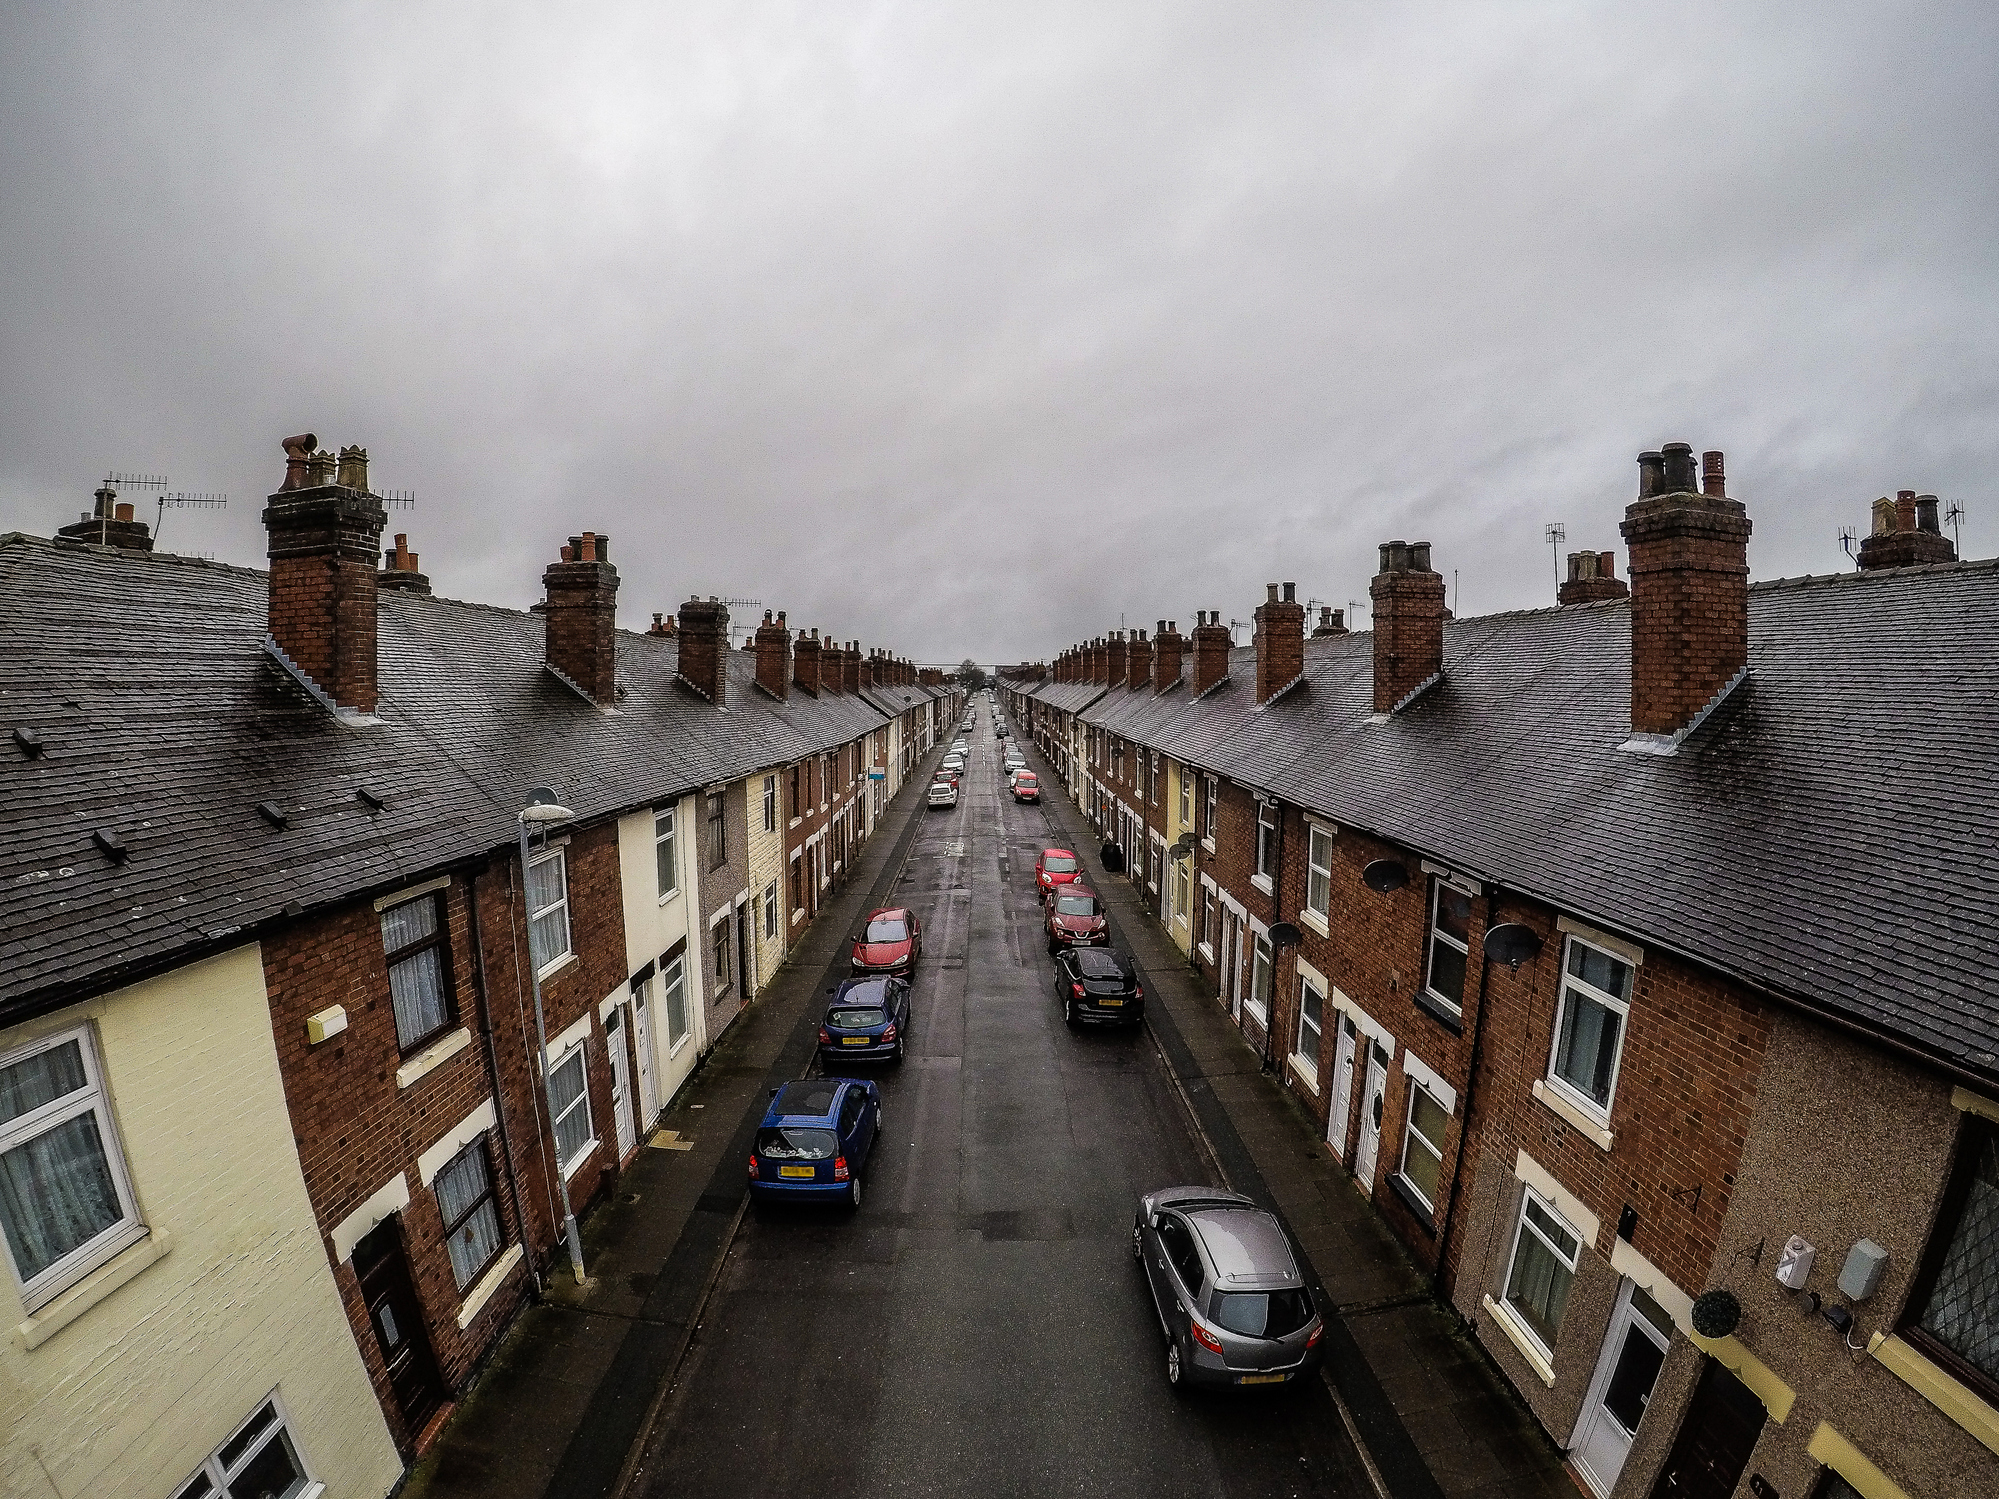 Aerial photograph of Oldfield Street in Fenton, one of Stoke on Trents poorer areas, Terrace housing, poverty and urban decline